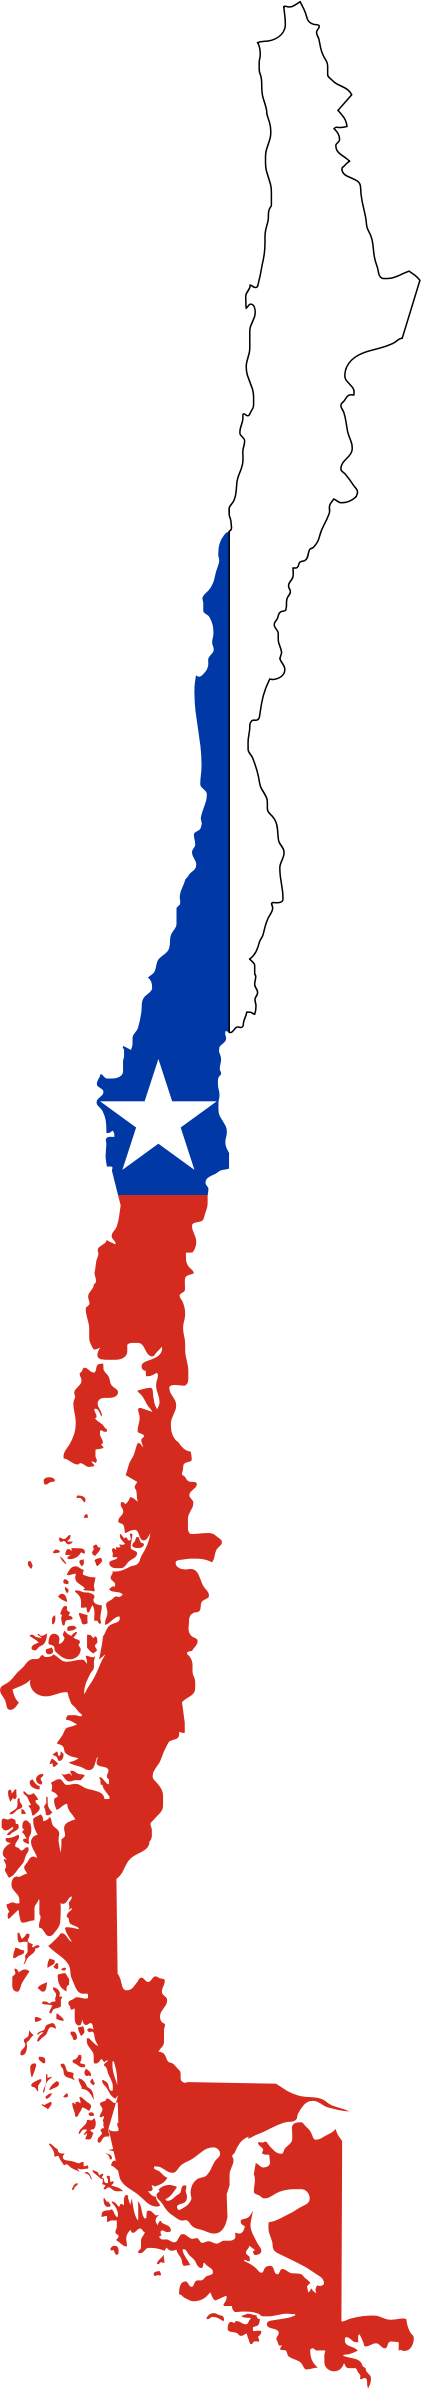 Chile Flag Map by GDJ